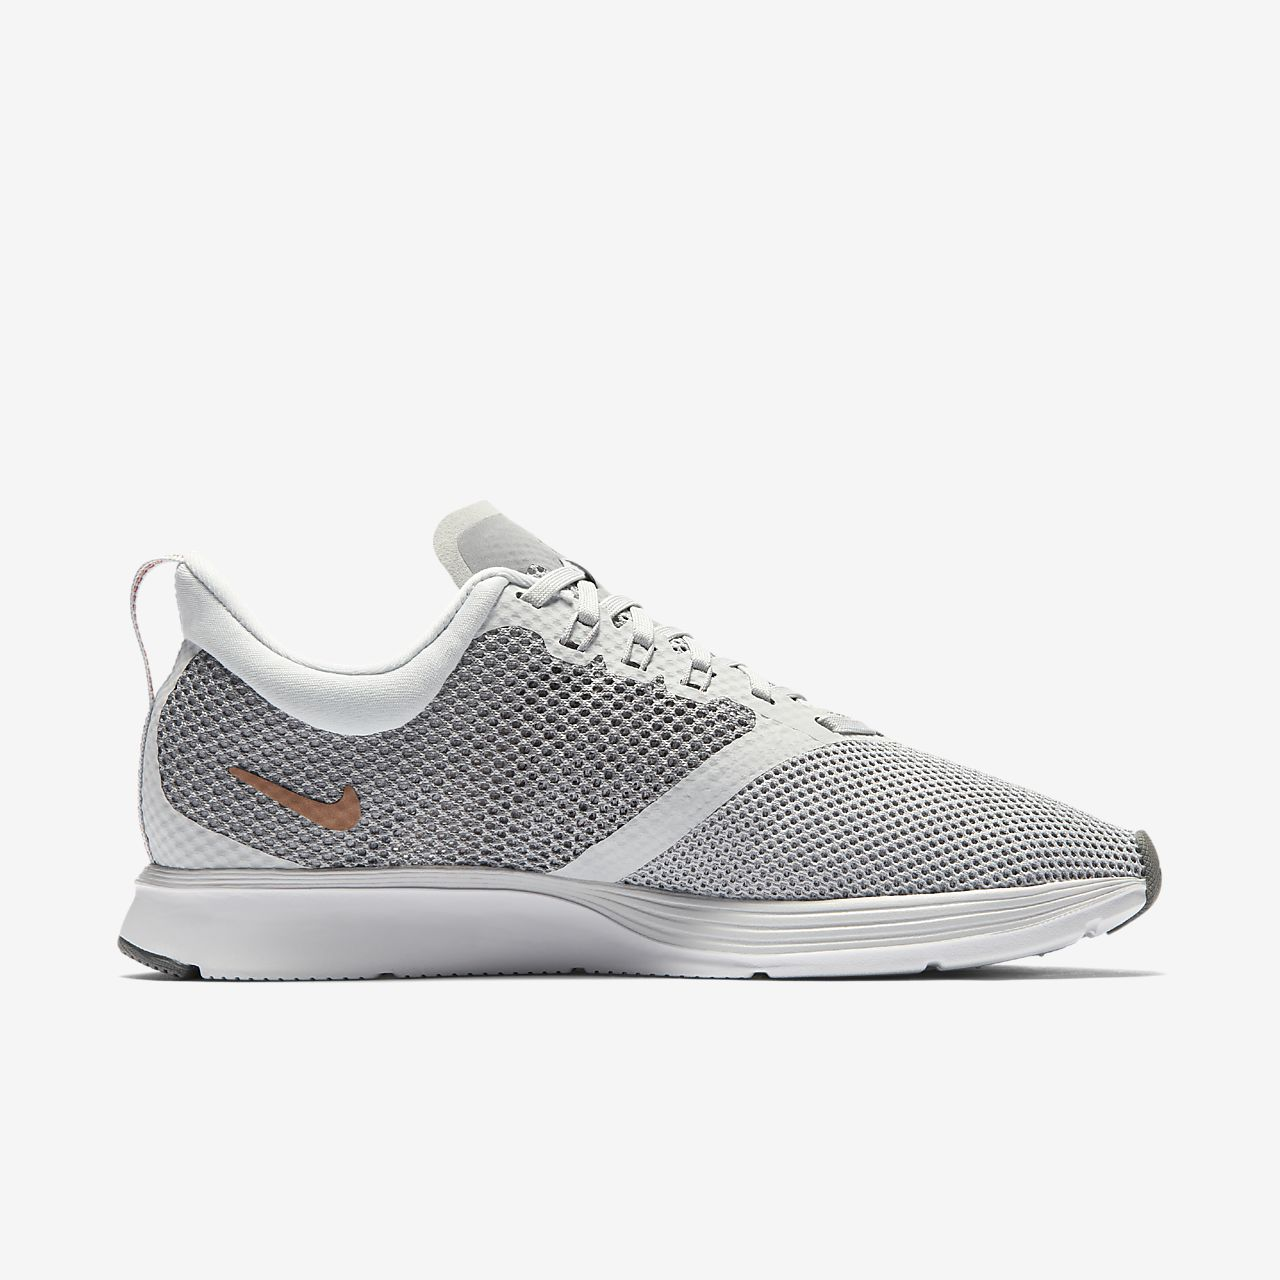 Nike Zoom Strike Women's ... Running Shoes pictures for sale sale lowest price OJUuRW